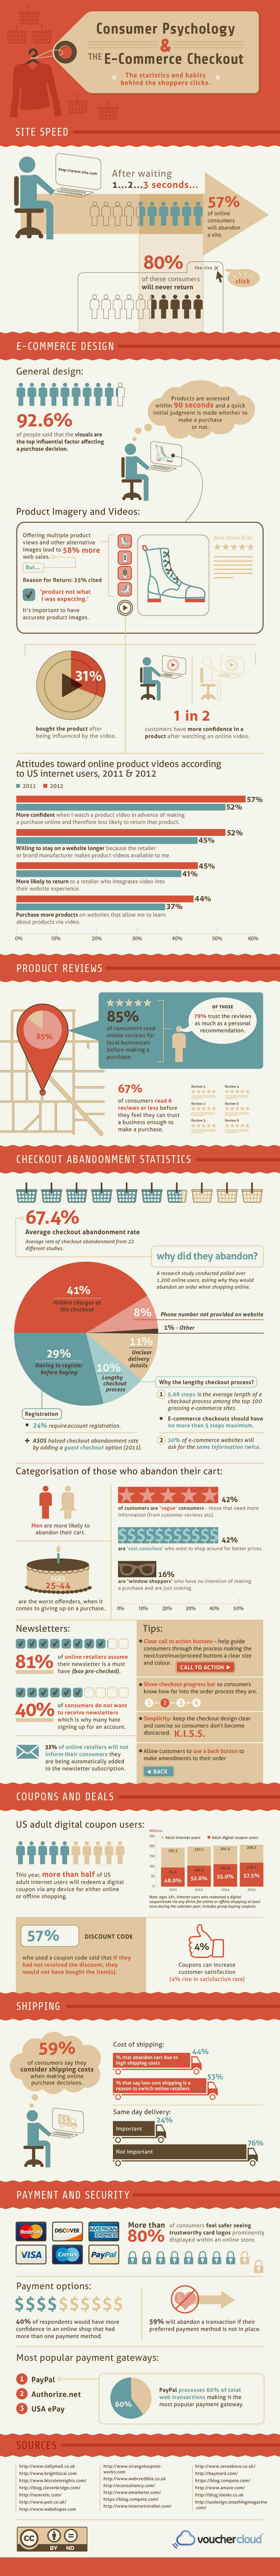 Infographic Consumer Psychology and Ecommerce. 85% Read online reviews BEFORE buying. 41% will abandon cart if hidden checkout costs. 60% of total web transactions are Paypal